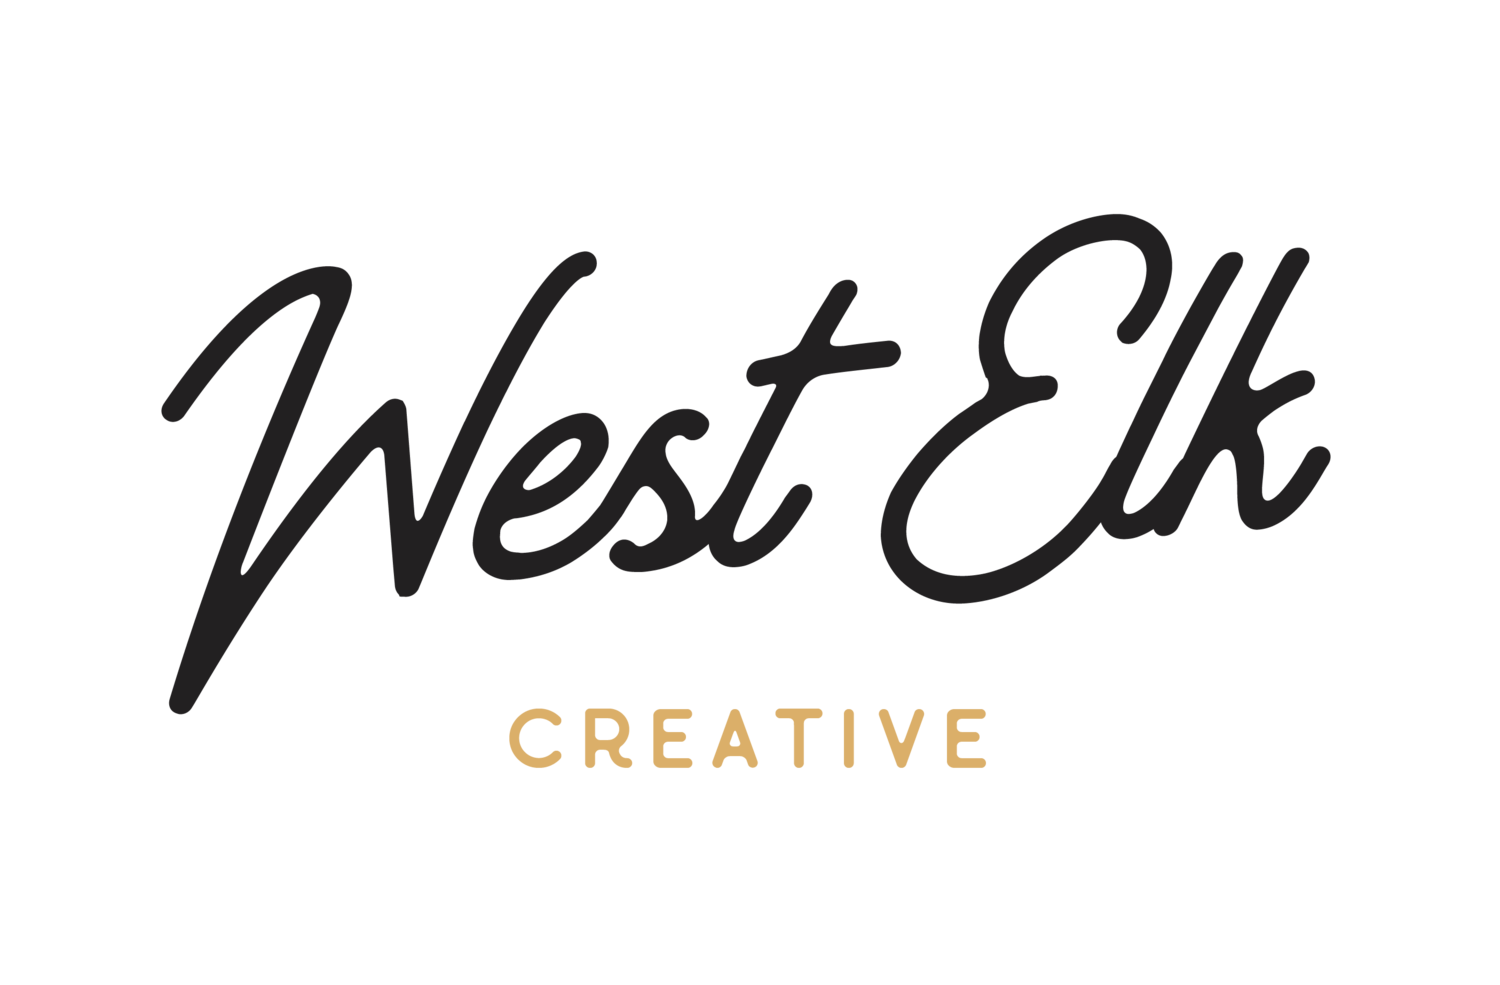 WEST ELK CREATIVE